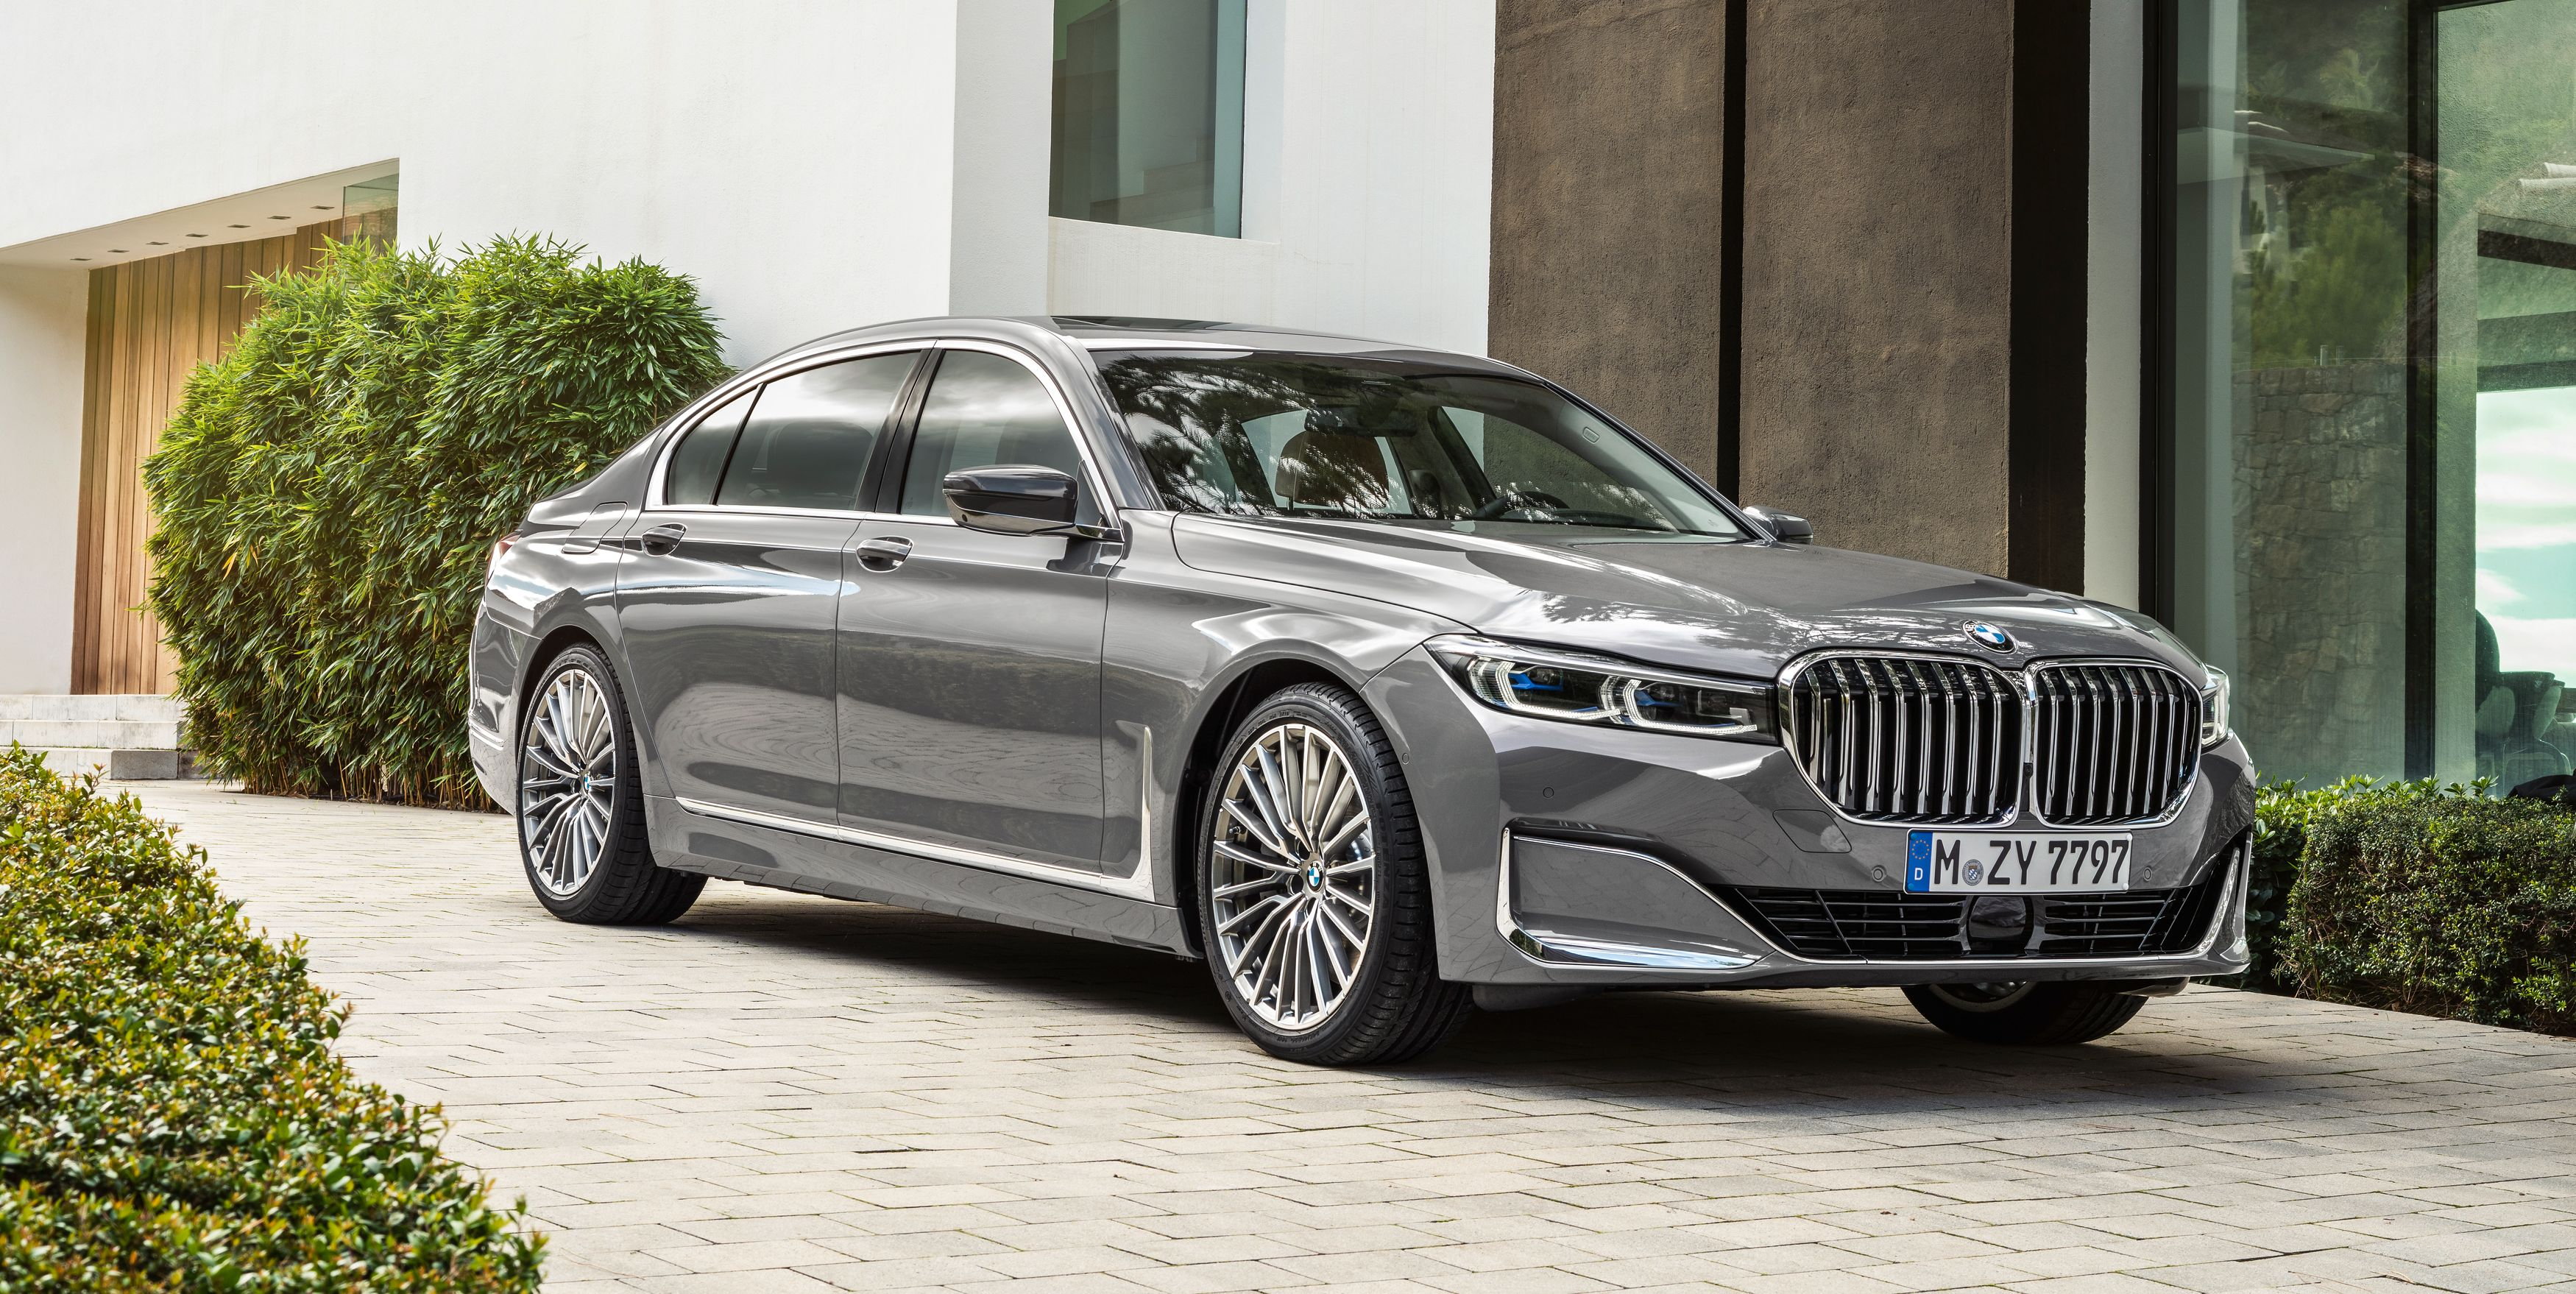 New Bmw 7 Series >> 2020 Bmw 7 Series Updated Bigger Grille Revised Engines More Tech